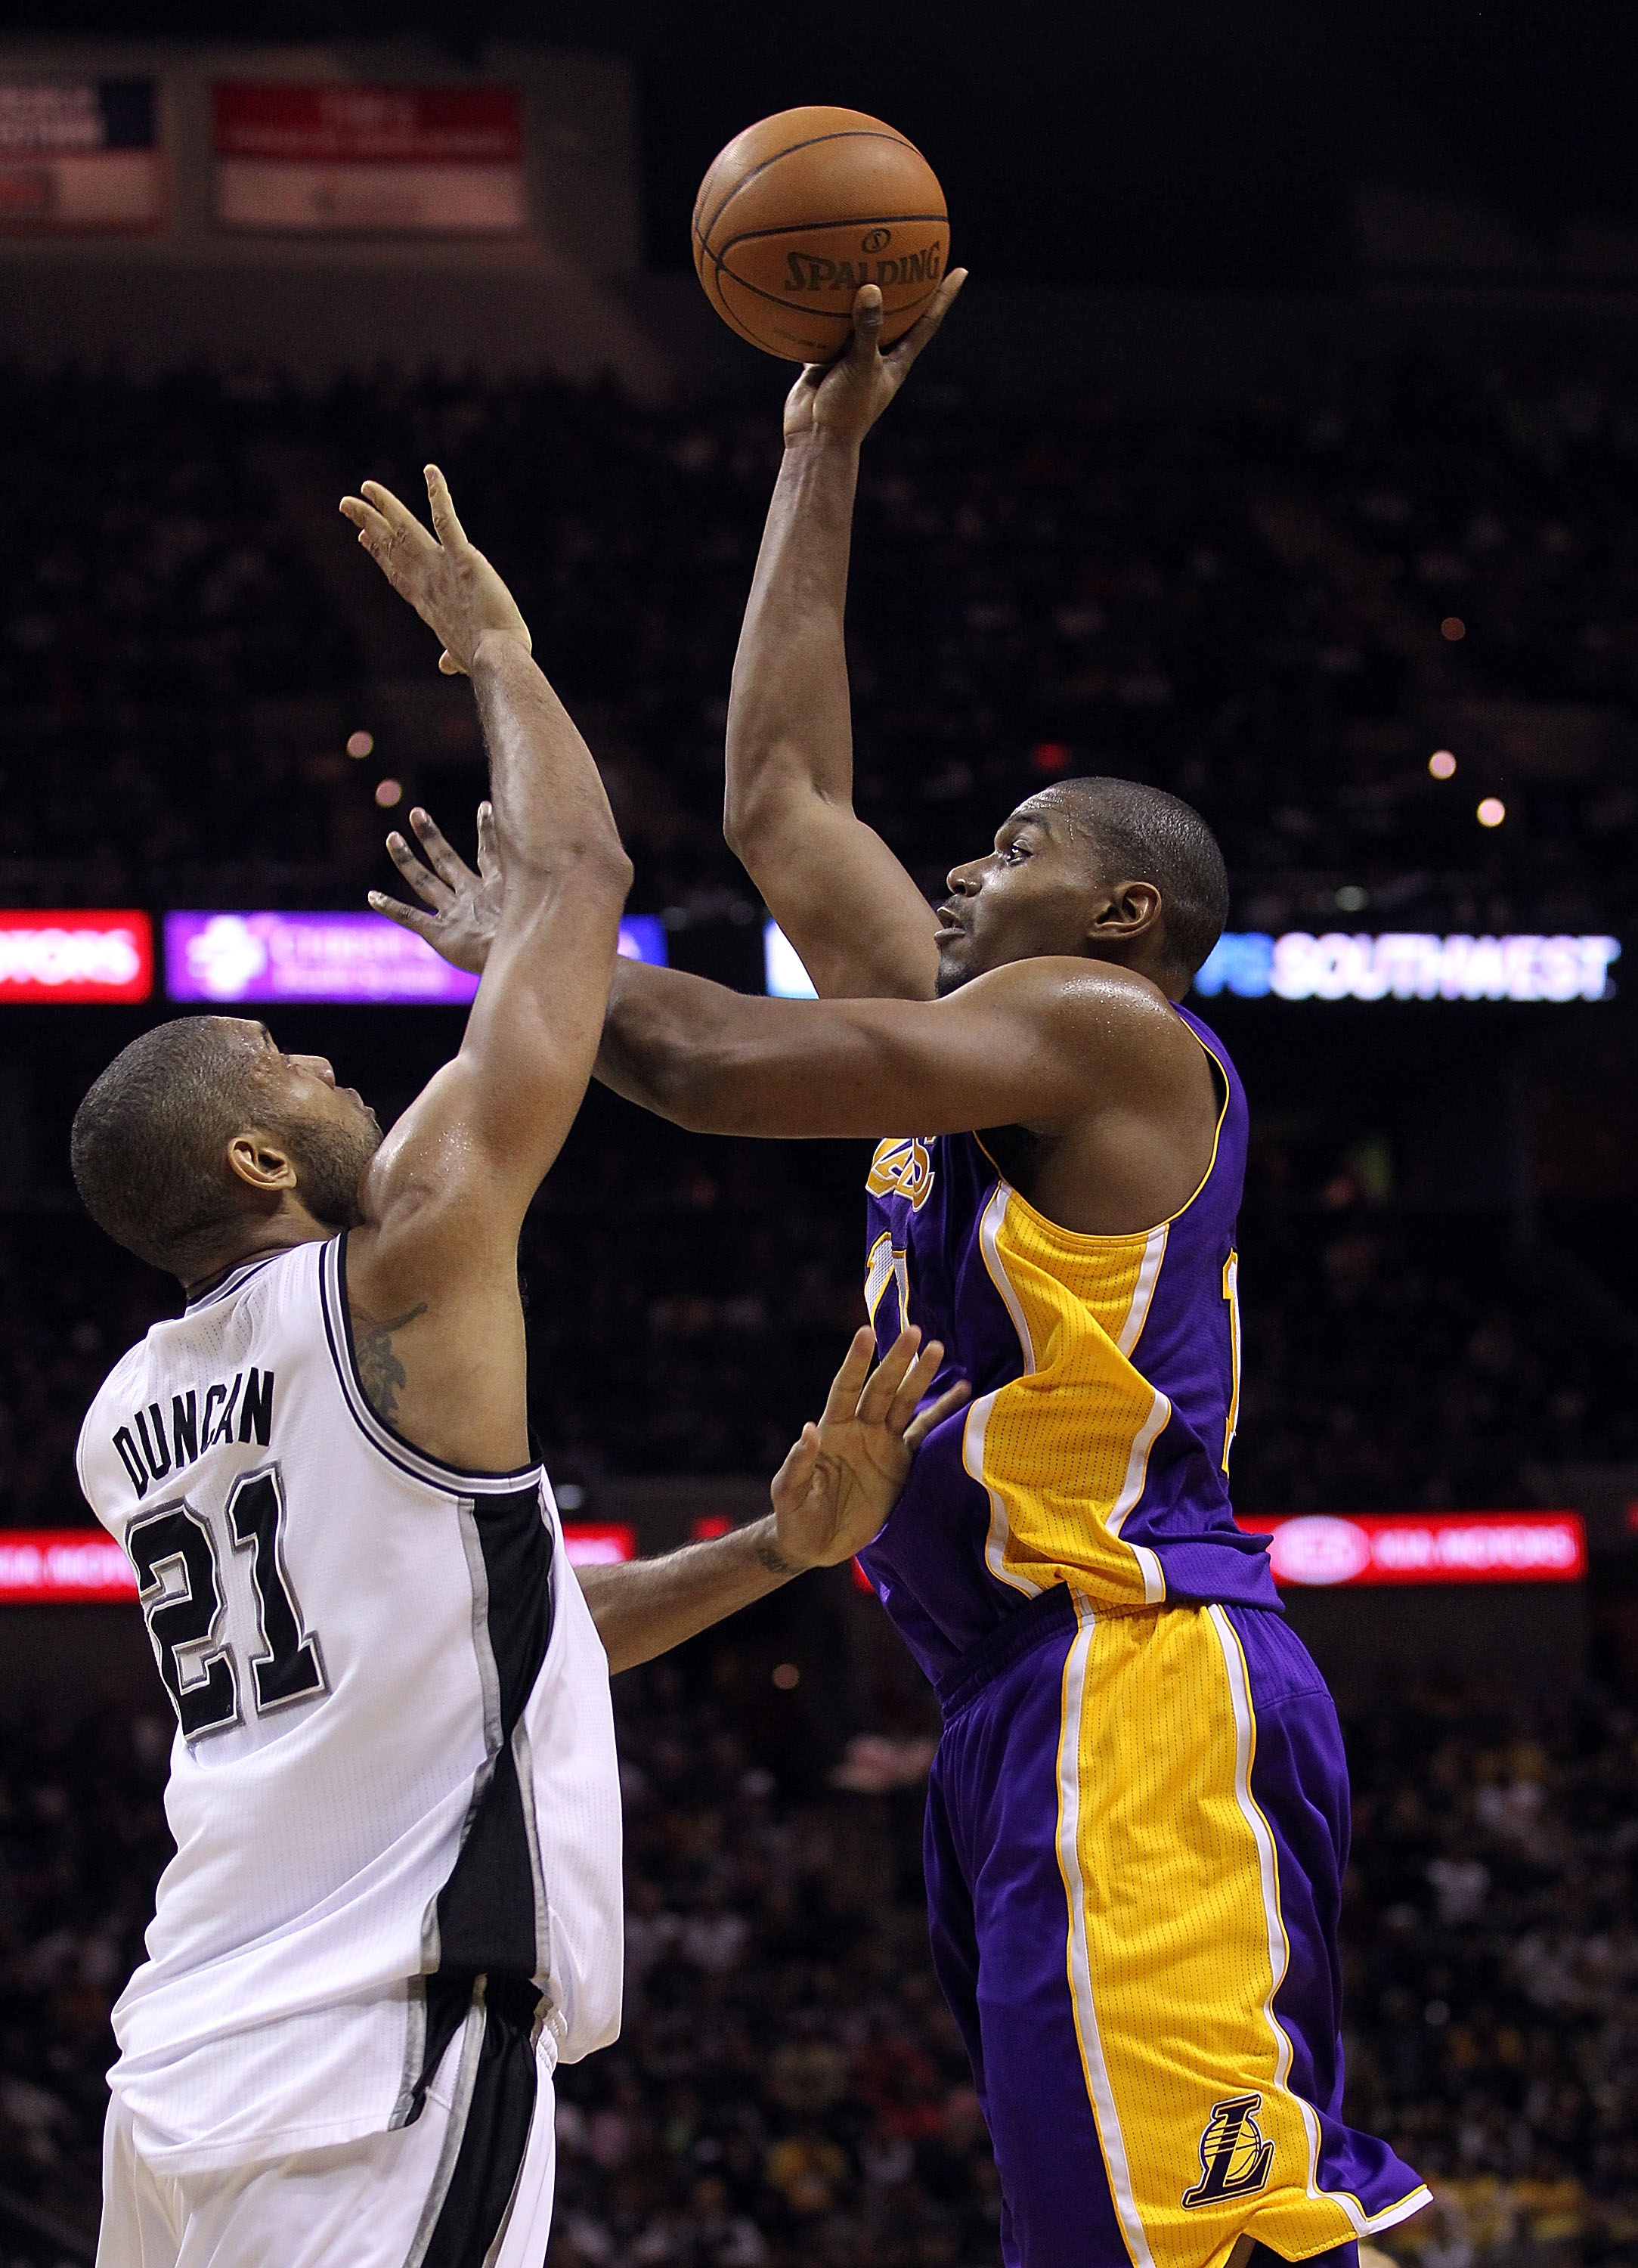 SAN ANTONIO, TX - DECEMBER 28:  Center Andrew Bynum #17 of the Los Angeles Lakers takes a shot against Tim Duncan #21 of the San Antonio Spurs at AT&T Center on December 28, 2010 in San Antonio, Texas.  NOTE TO USER: User expressly acknowledges and agrees